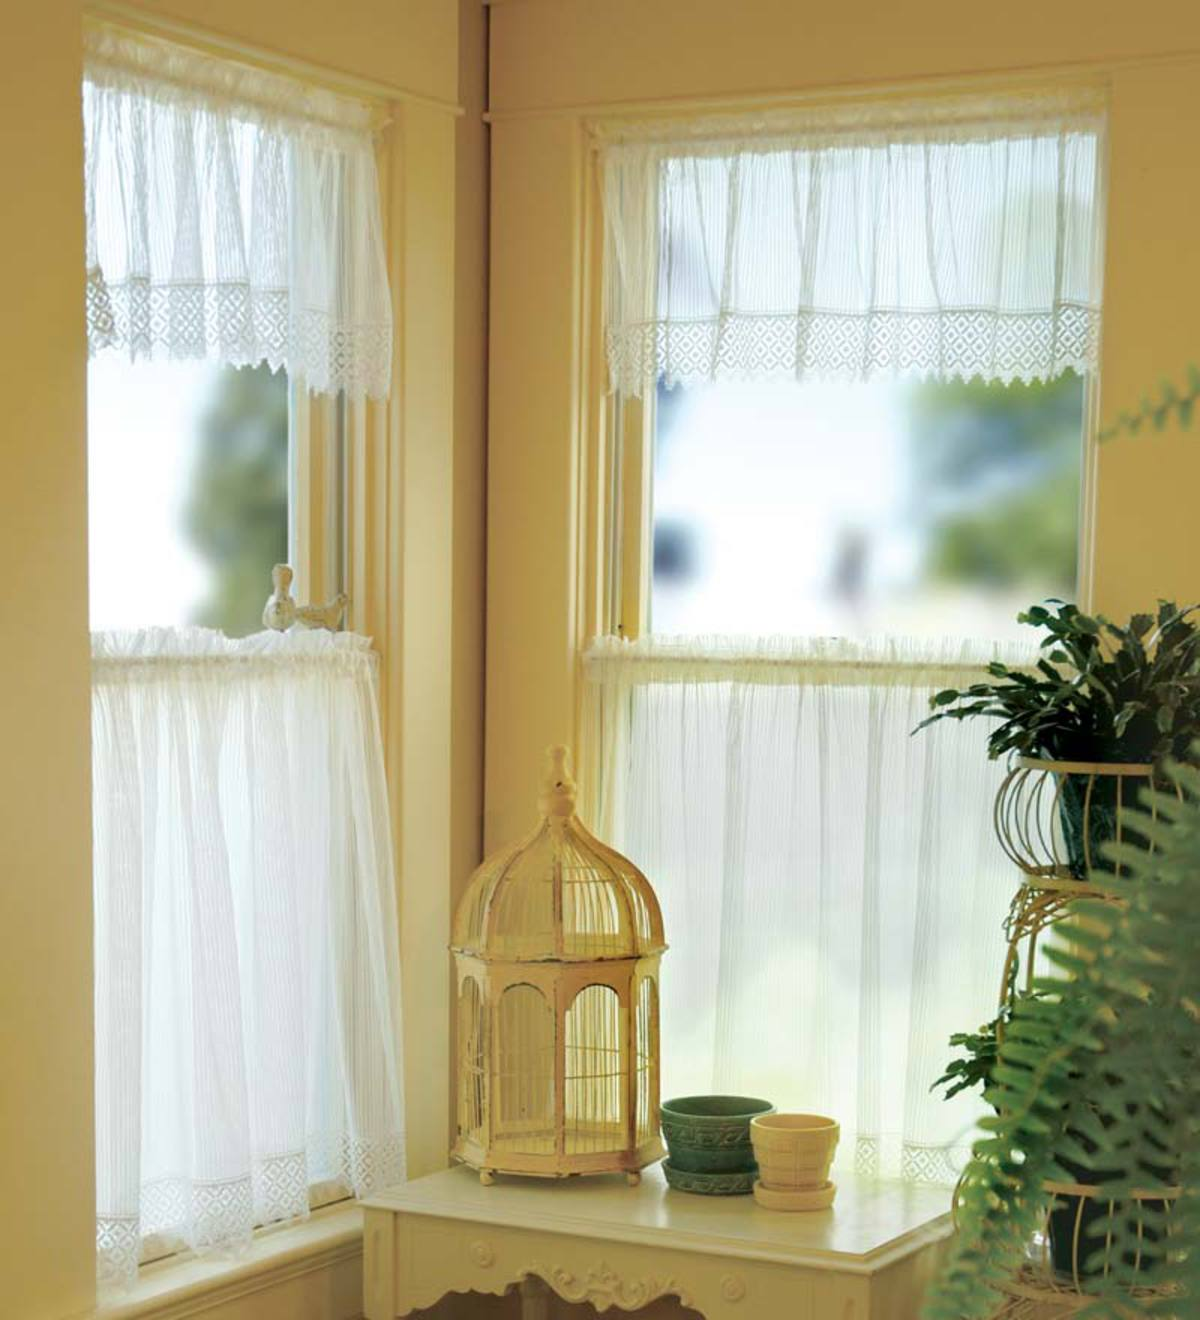 Machine-Washable Chelsea Lace Valances, Tiers And Panels